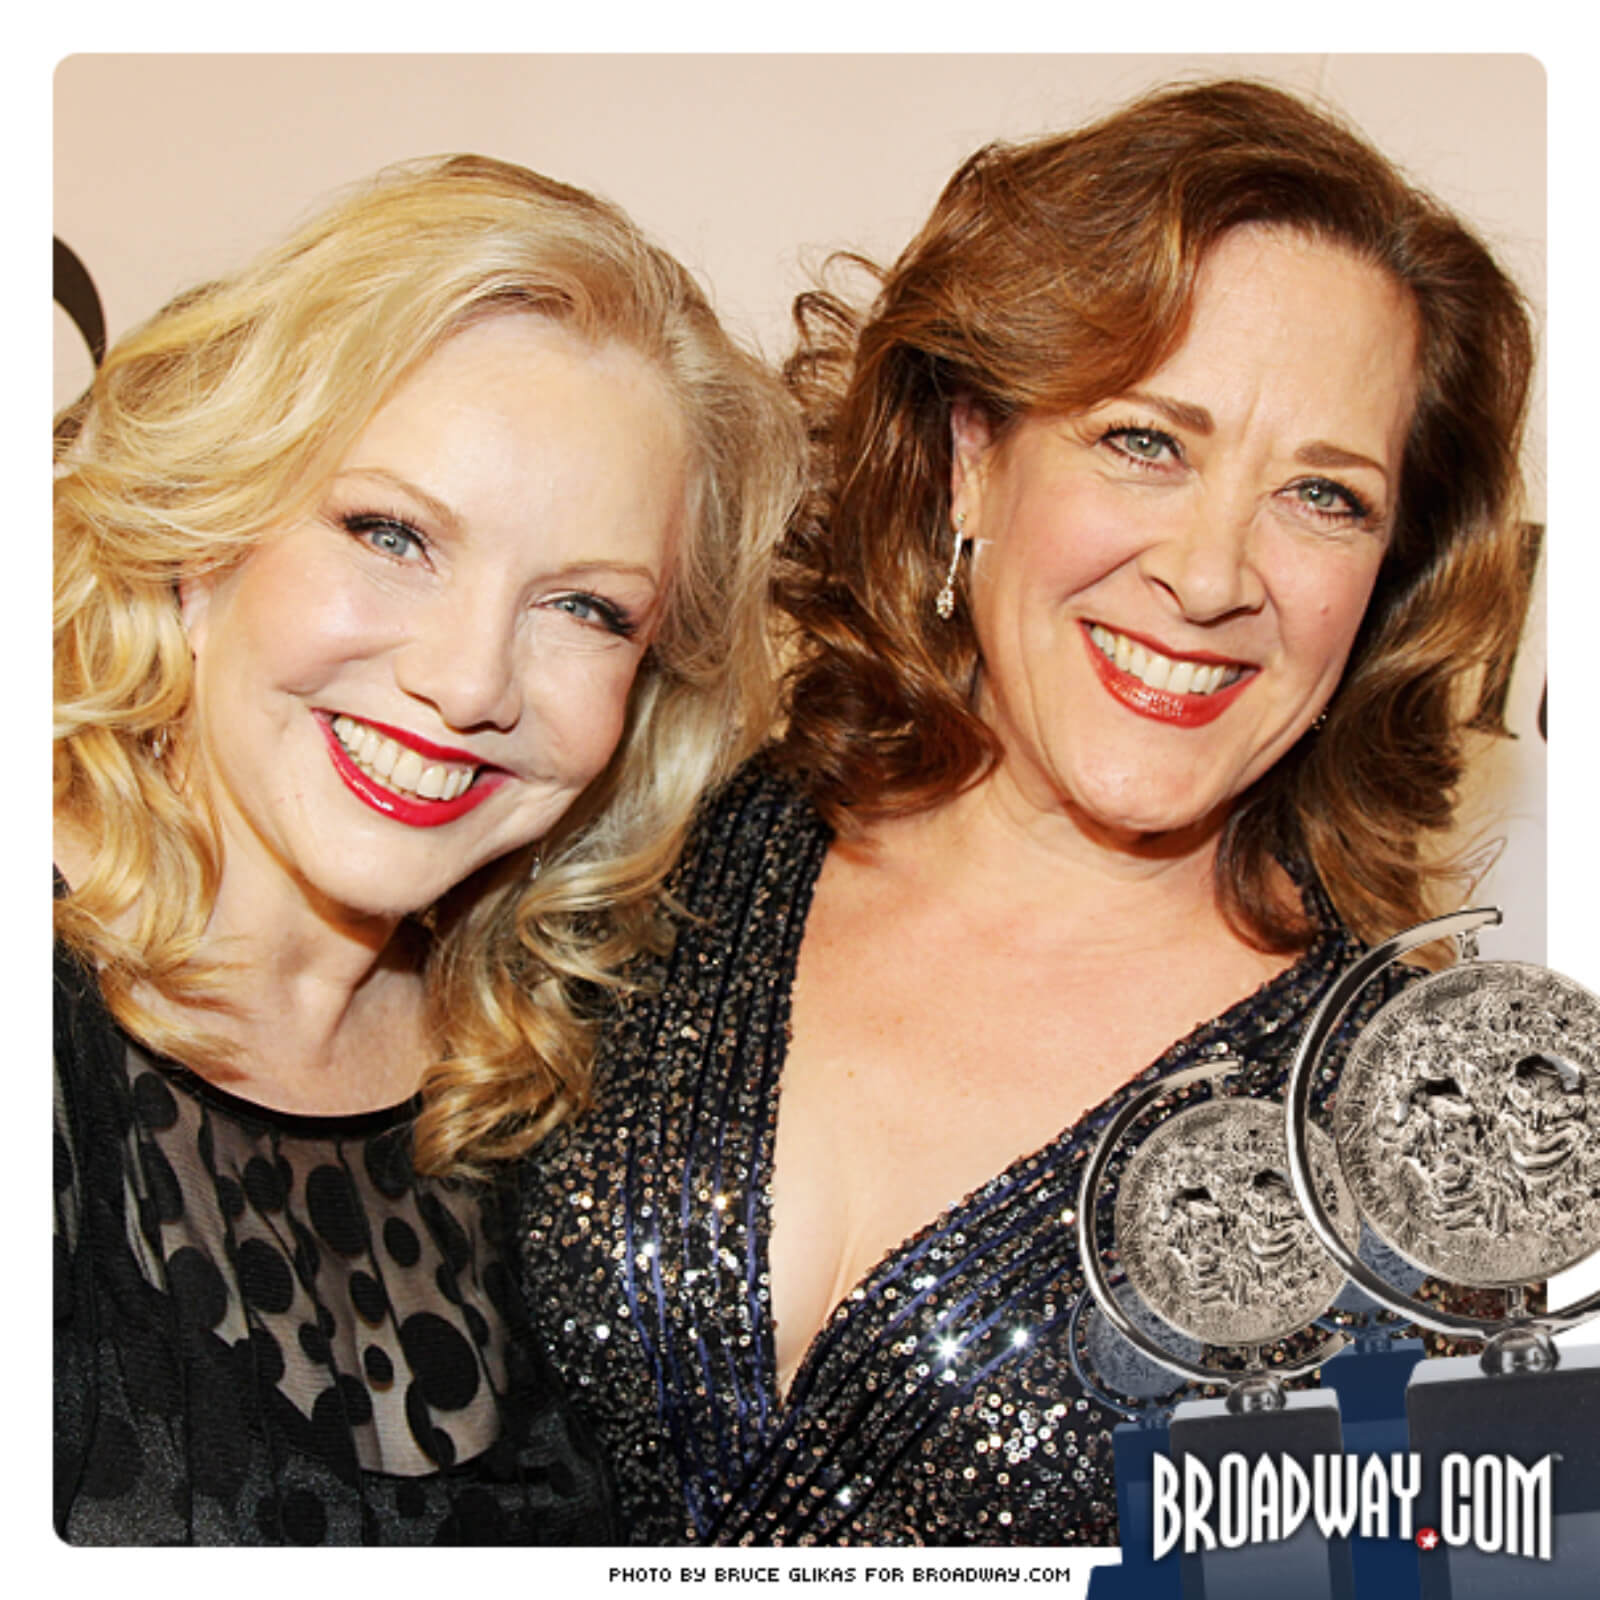 Susan Stroman in a black dress embracing Karen Ziemba is a navy sequined dress. Karen was in Crazy For You, And The World Goes 'Round, Steel Pier, 110 In The Shade, Contact, and Bullets Over Broadway.